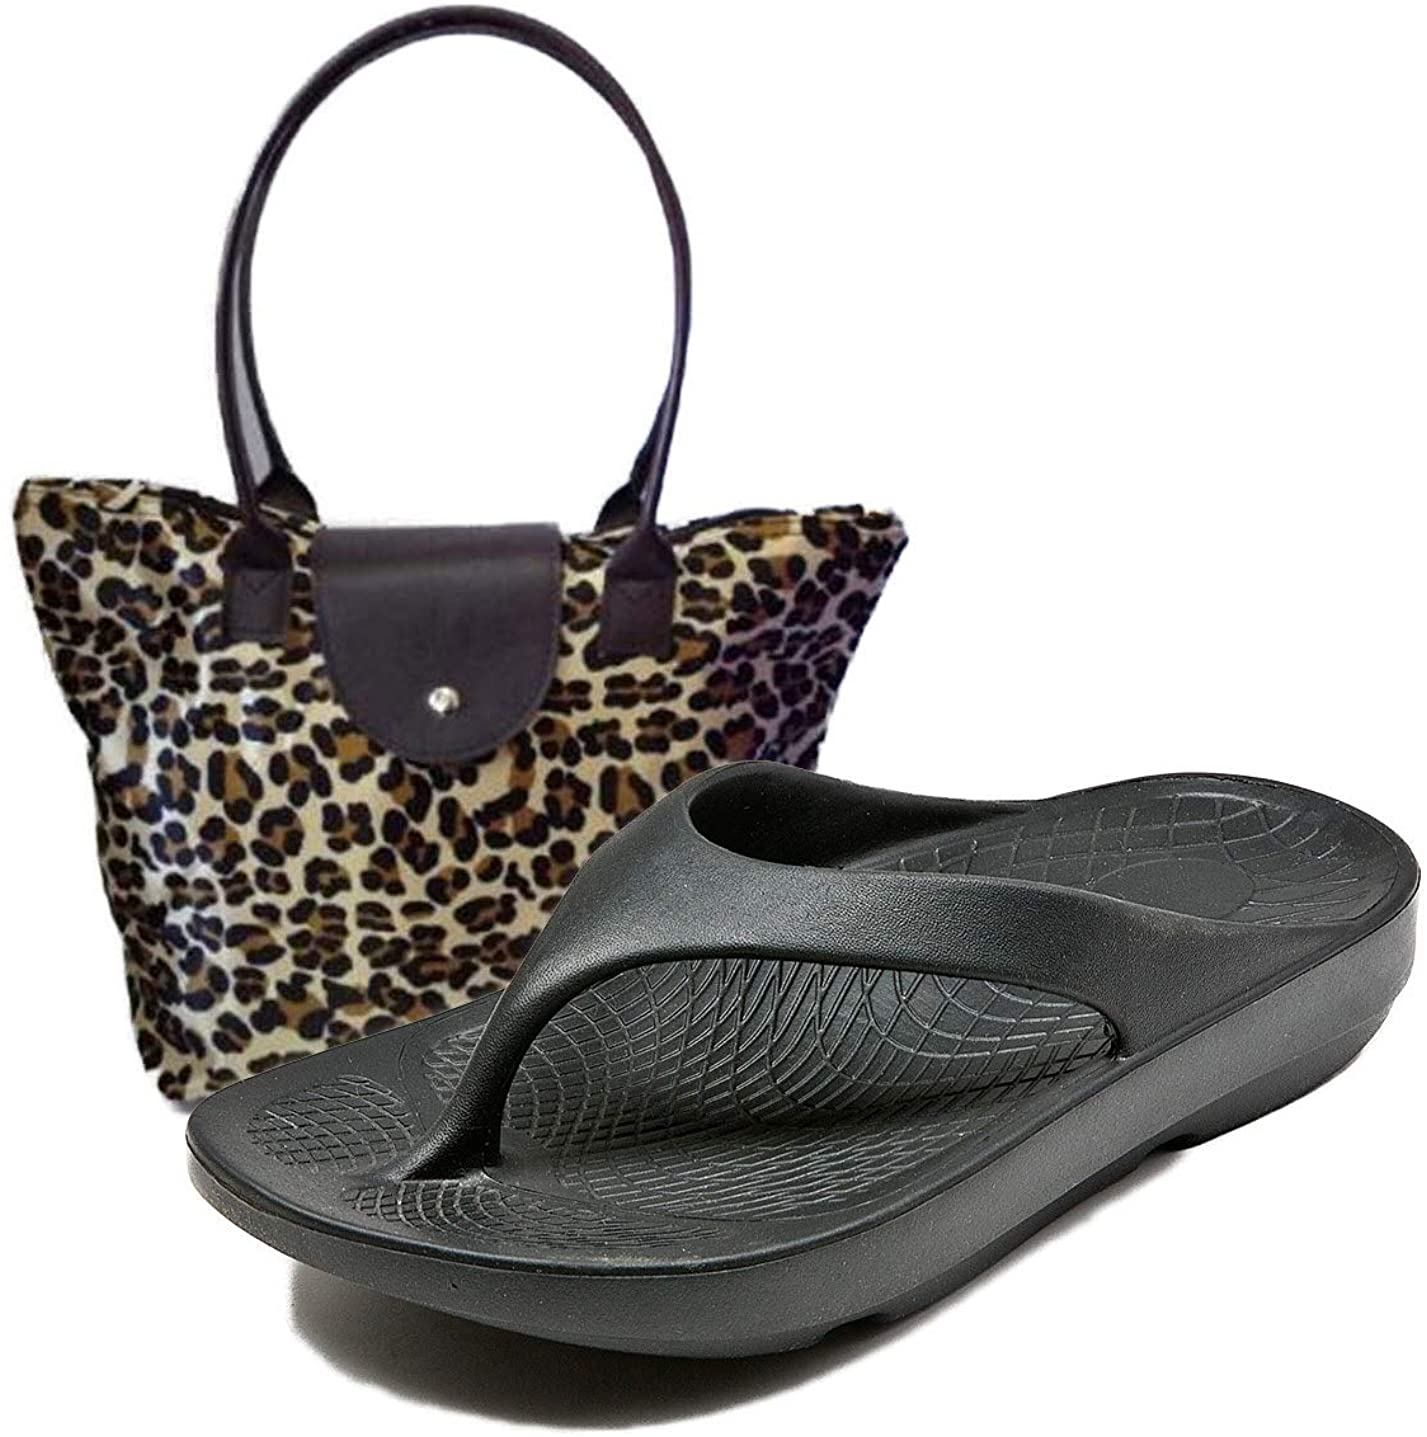 LUXFEET Orthopedic Arch FLIP Flops with Toe Sock OR Tote Bag OR Charms